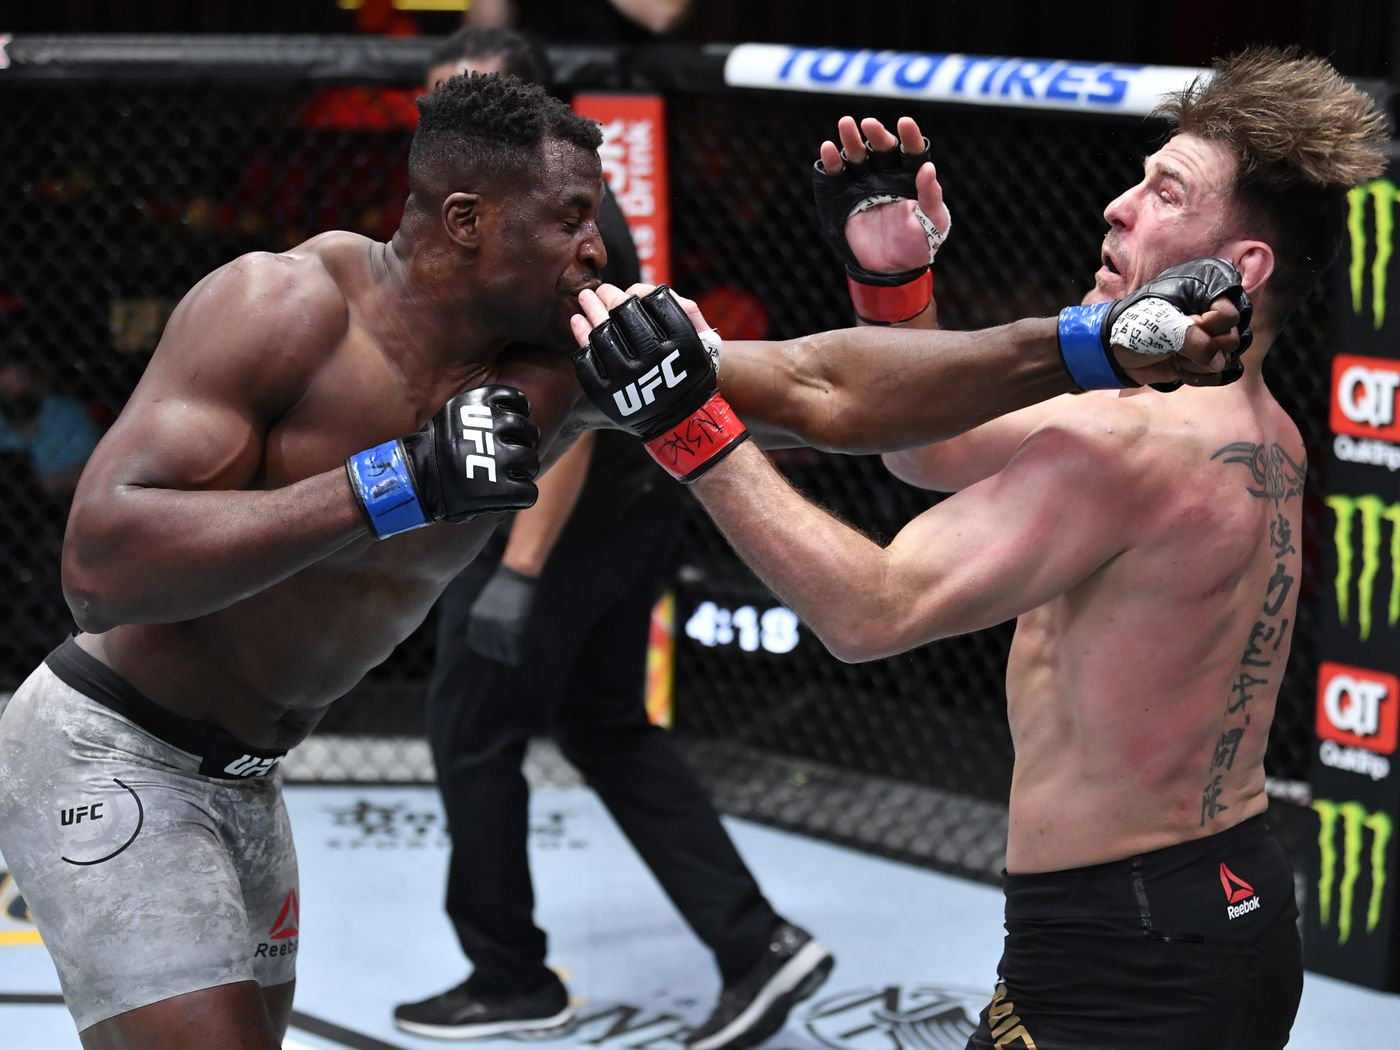 KO!!! Francis Ngannou vs Stipe Miocic 2 full fight video highlights from UFC 260 - Bloody Elbow